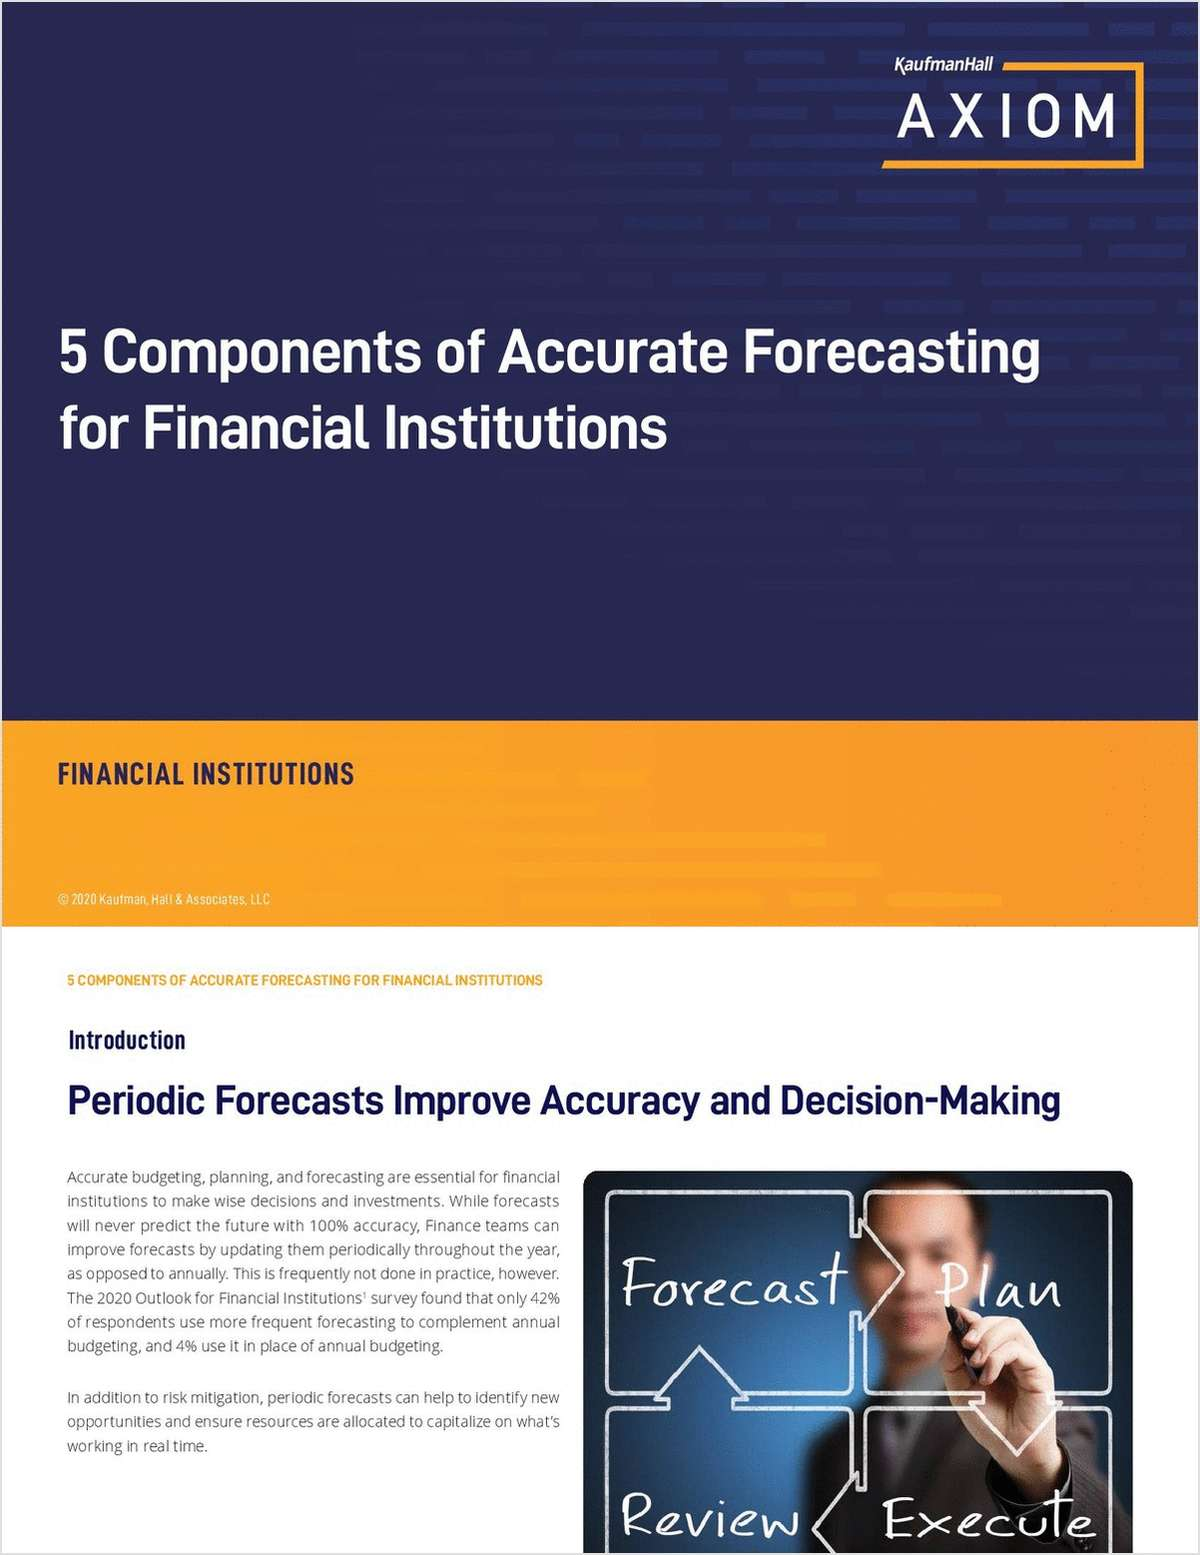 Navigating Uncertain Times: Improve Accuracy and Optimize Decisions with Periodic Forecasts